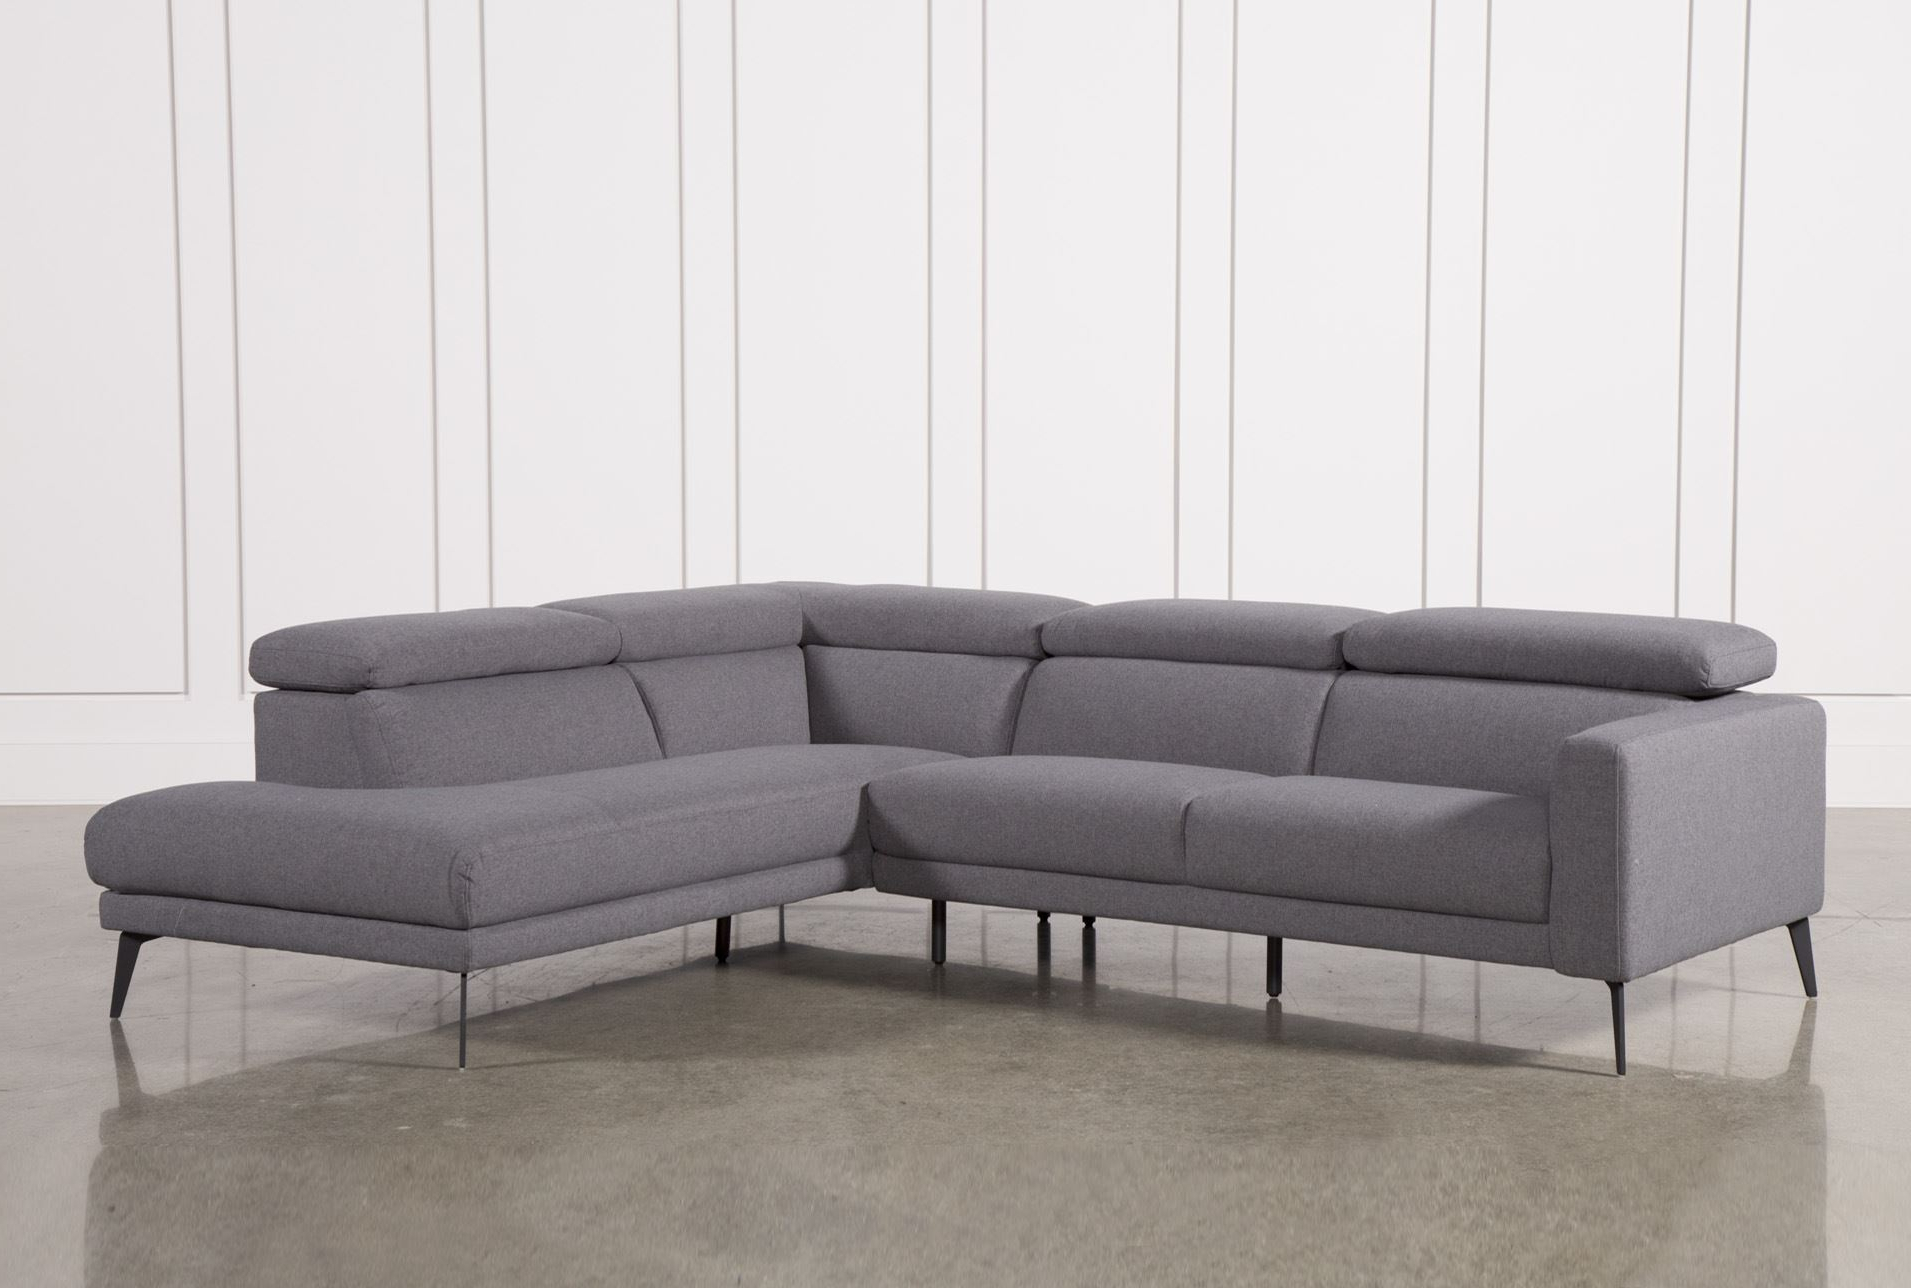 Best And Newest Norfolk Grey 3 Piece Sectionals With Laf Chaise Within Awesome Collection Of Raf Chaise On Neo Grey 2 Piece Sectional W Raf (View 3 of 20)